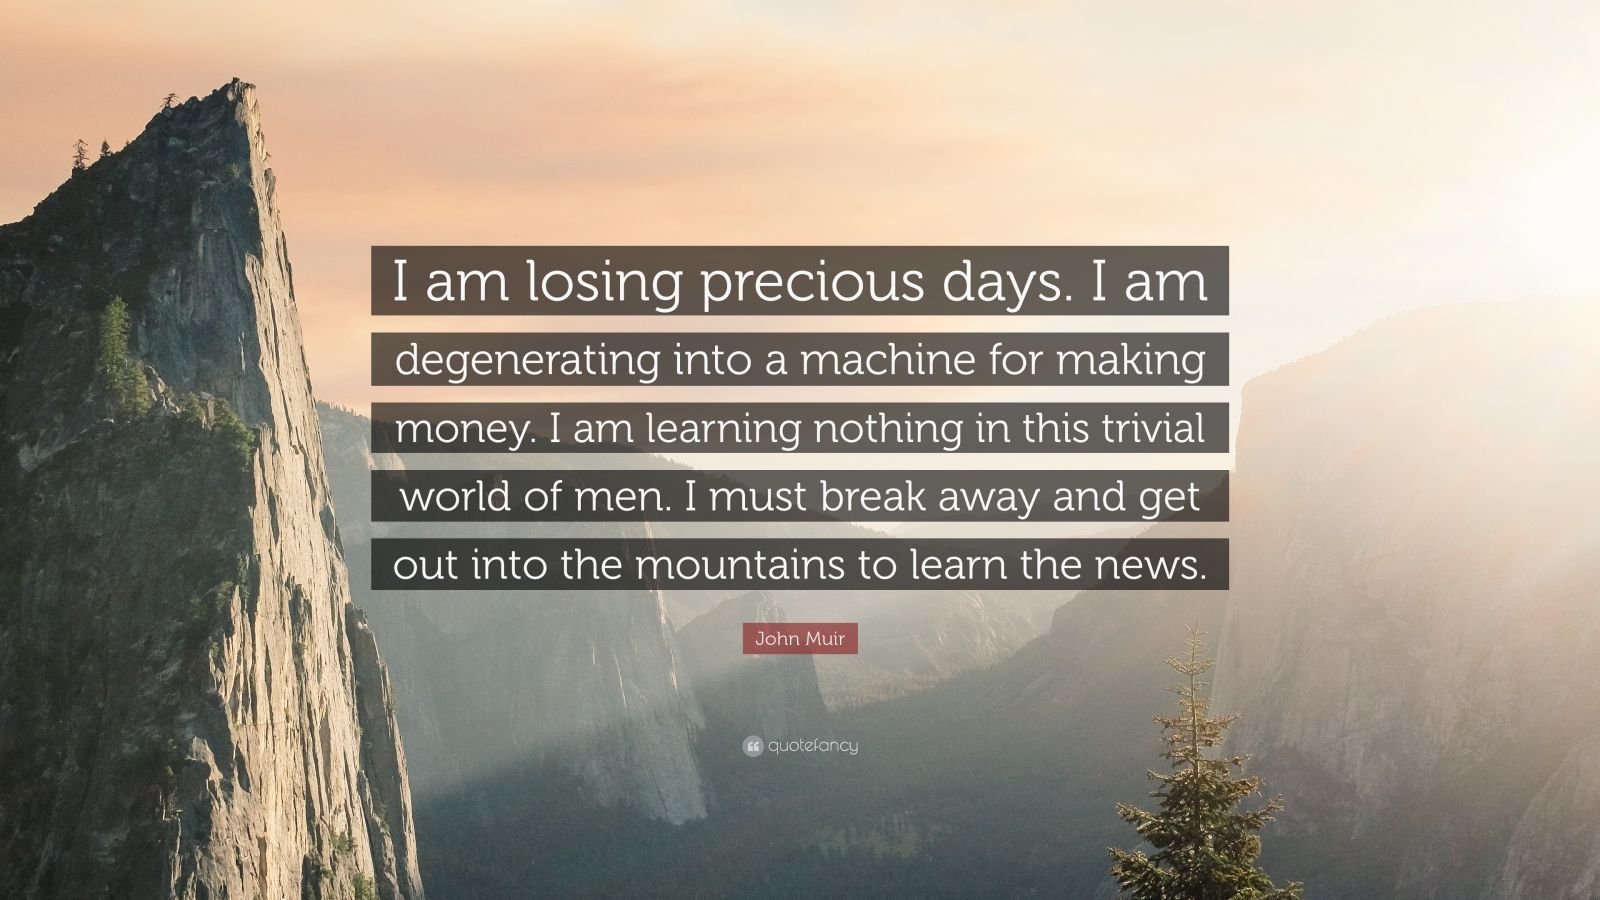 """John Muir Quote: """"I am losing precious days. I am degenerating into a machine for making money. I am learning nothing in this trivial world of men. I must break away and get out into the mountains to learn the news."""""""